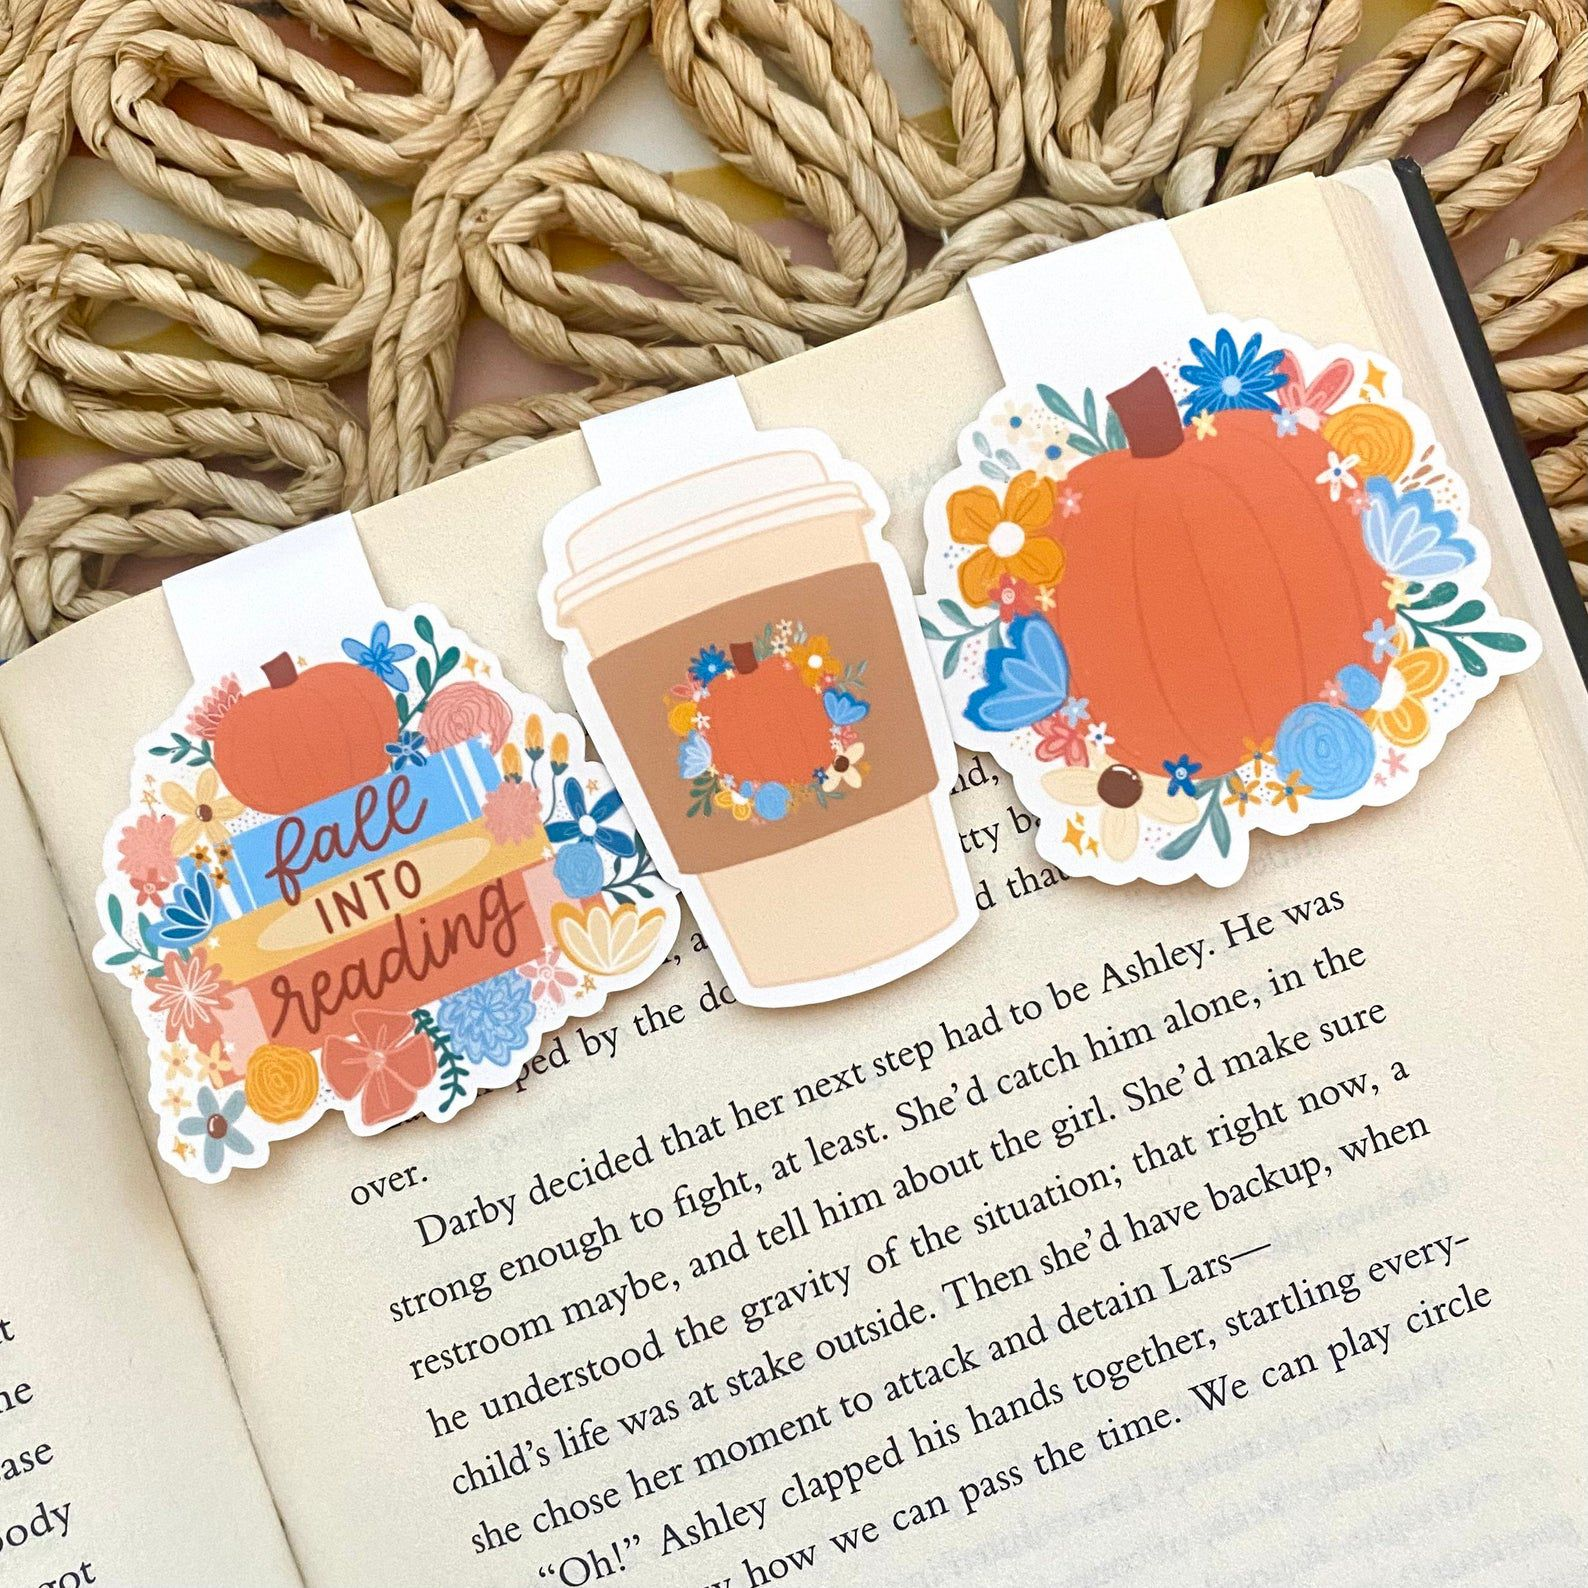 Image of three fall-themed magnetic bookmarks at the top of an open book page.